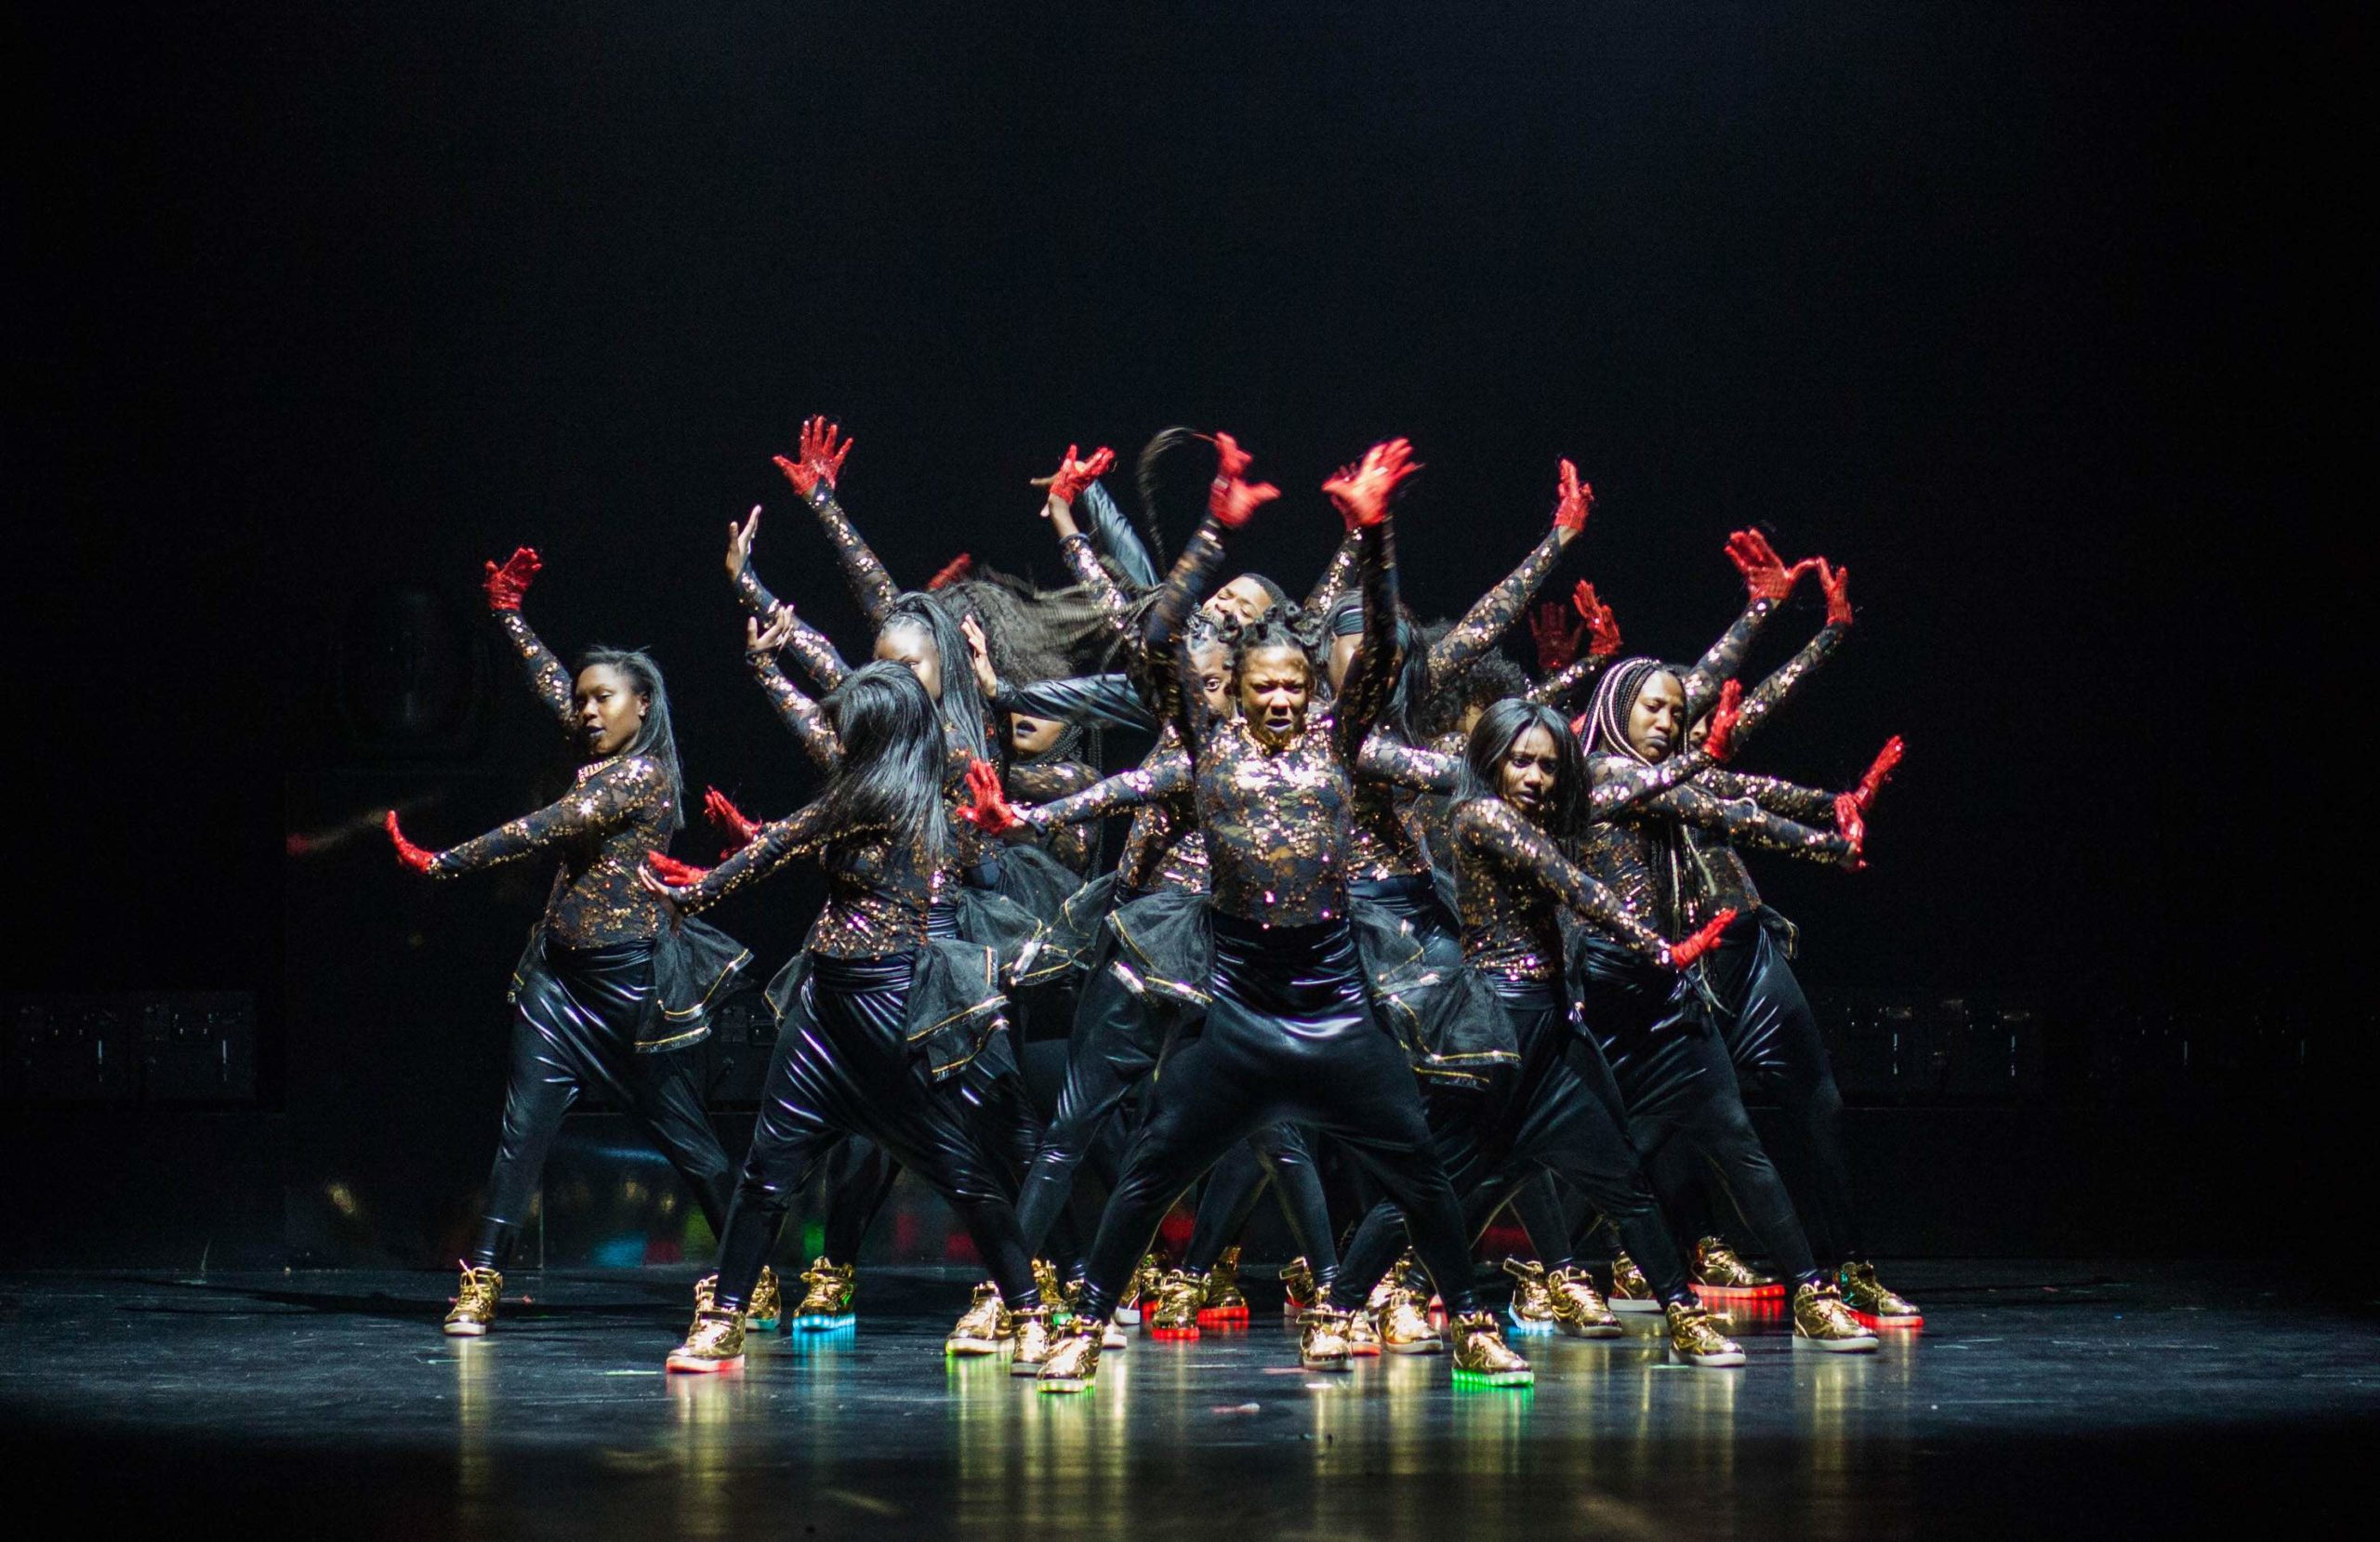 8. Holiday Performances at the World Famous Apollo Theater